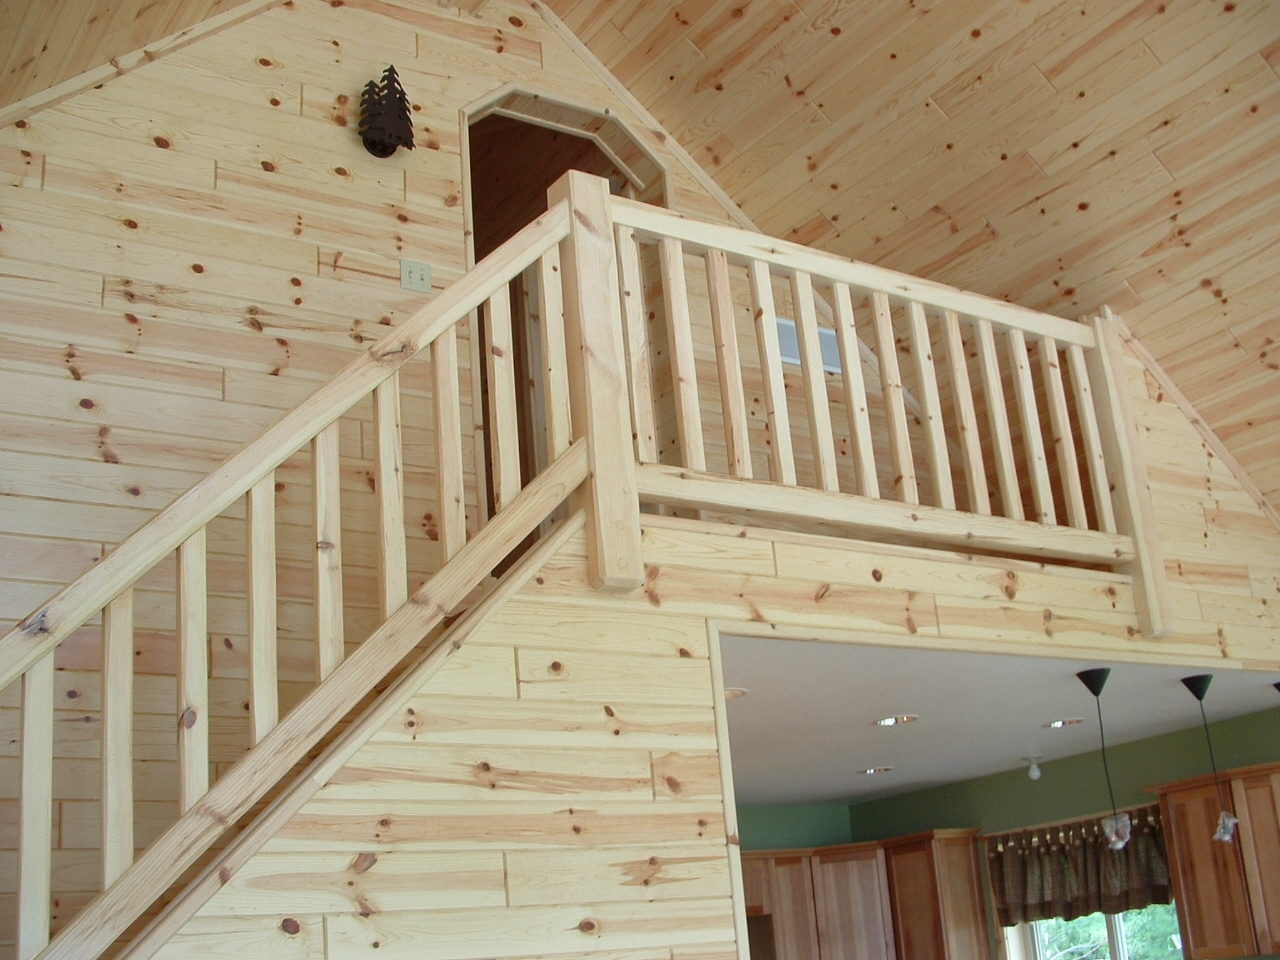 Rustic Wood Stairs And Railings Cedar Pine Staircases   Rustic Handrails For Stairs   Basement   Wooden   Banister   Metal   Deck